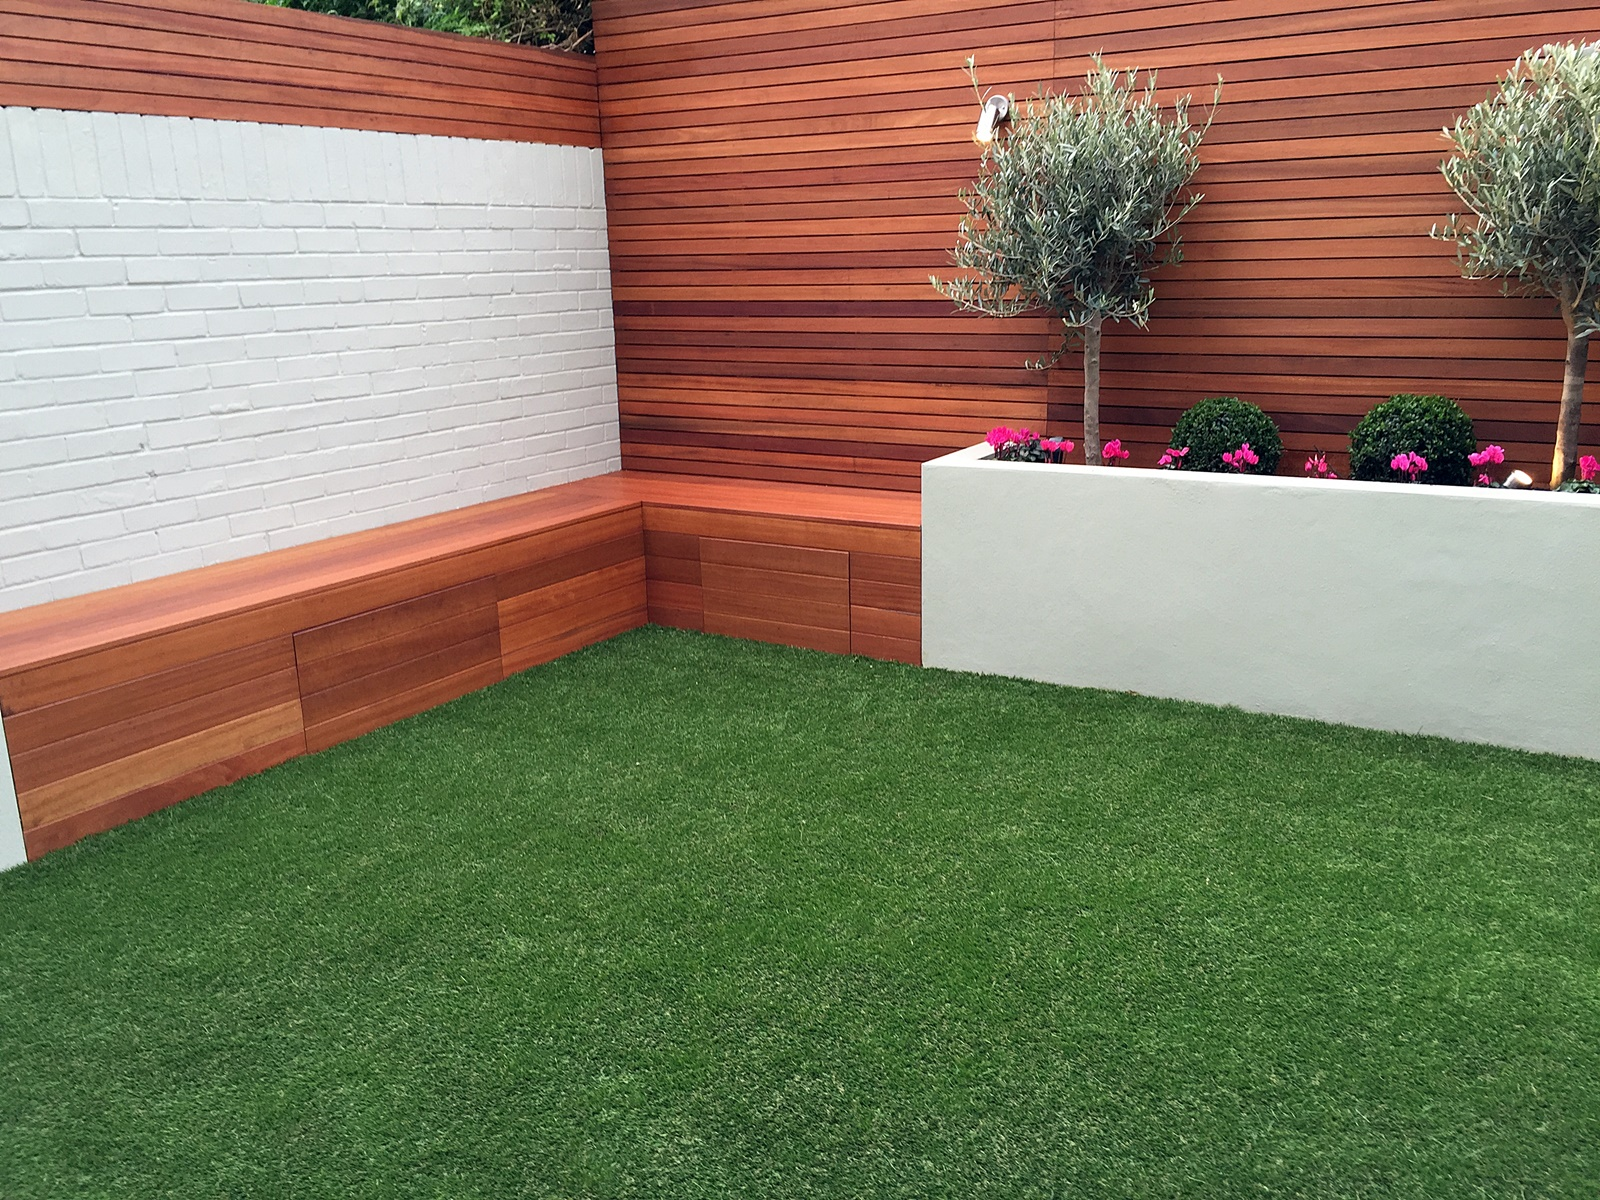 Simple modern court yard garden designer battersea fulham for Small modern garden design ideas